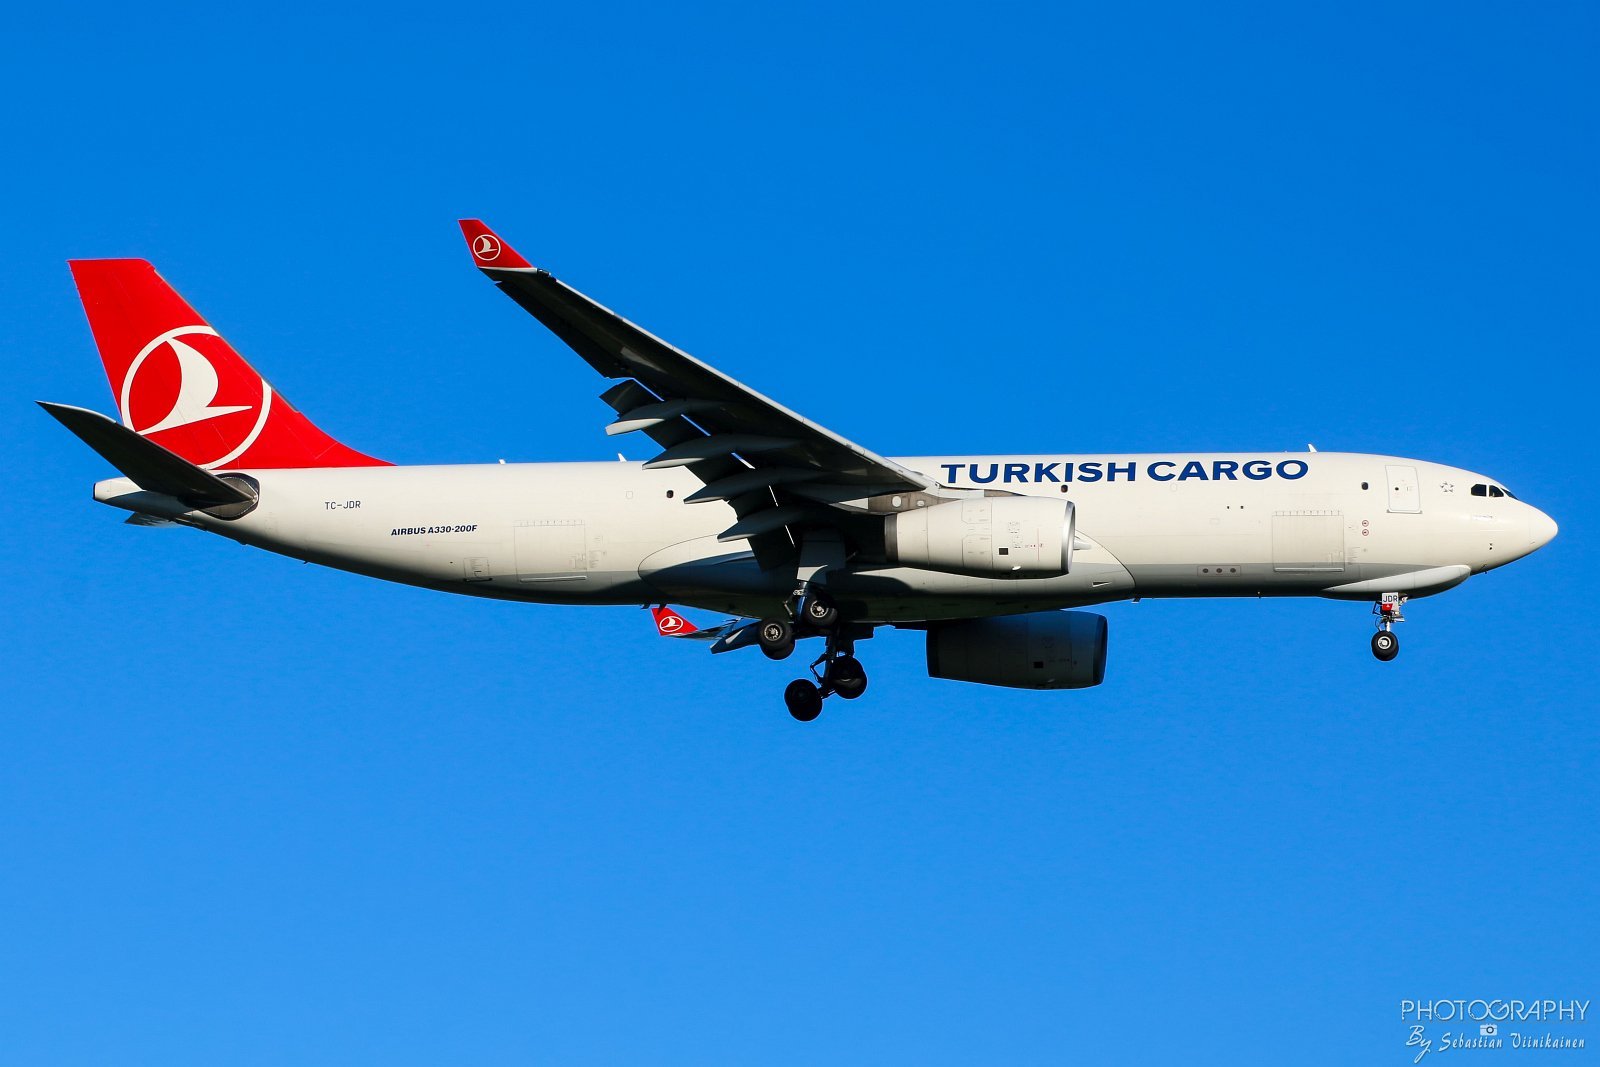 TC-JDR Turkish Airlines Cargo A330-200F, 21.07.2017